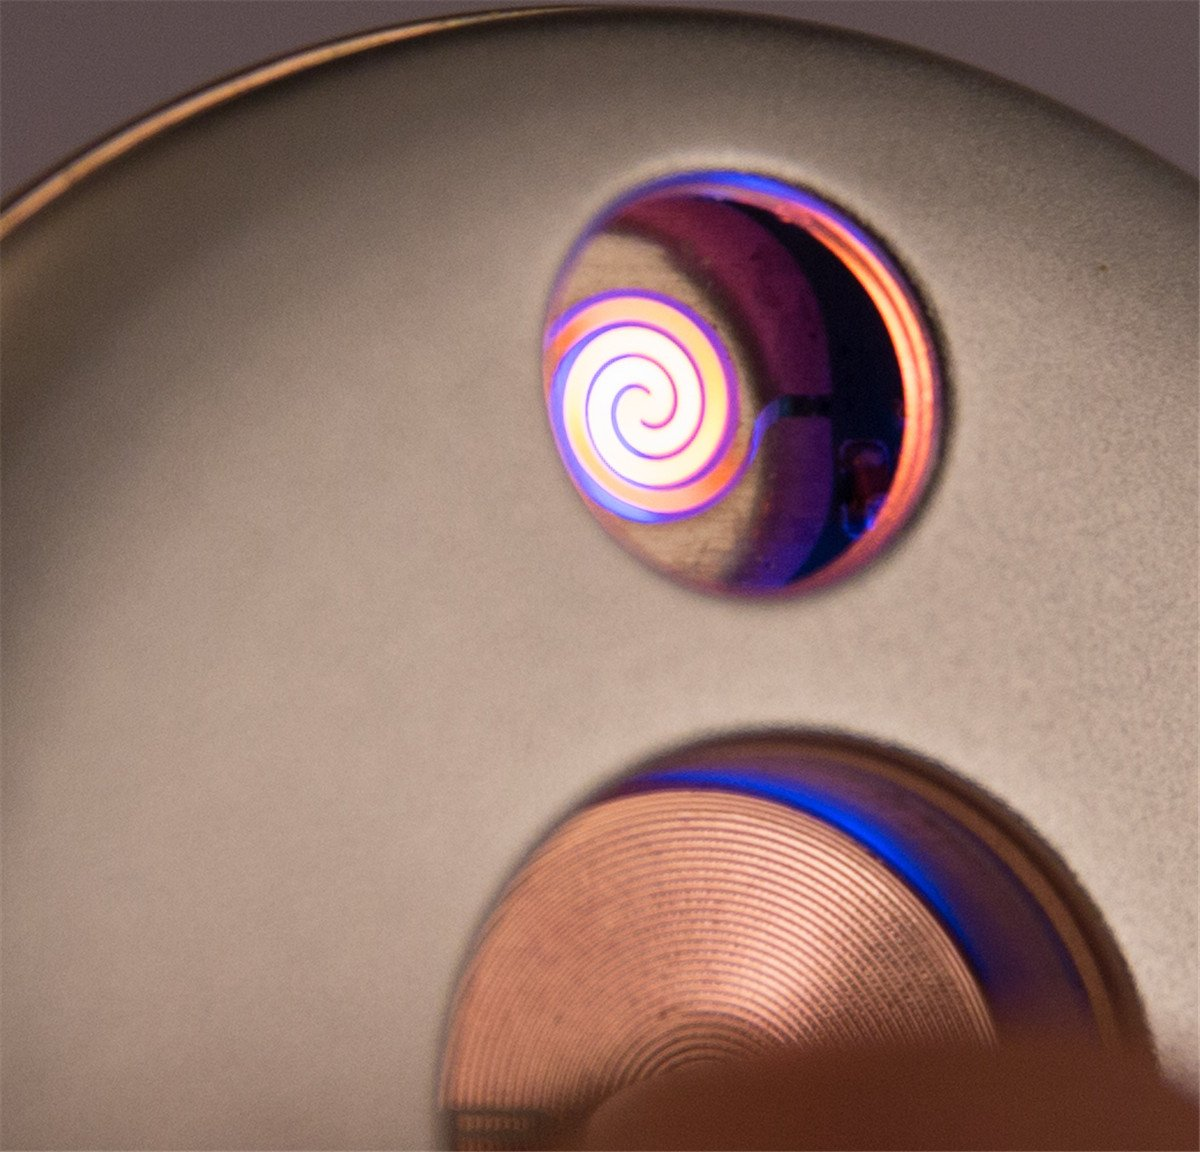 Rechargeable Coil Lighter Electric USB Lighters Round UFO Plate Windproof Pocket Lighter Rose Gold by Primo (Image #3)